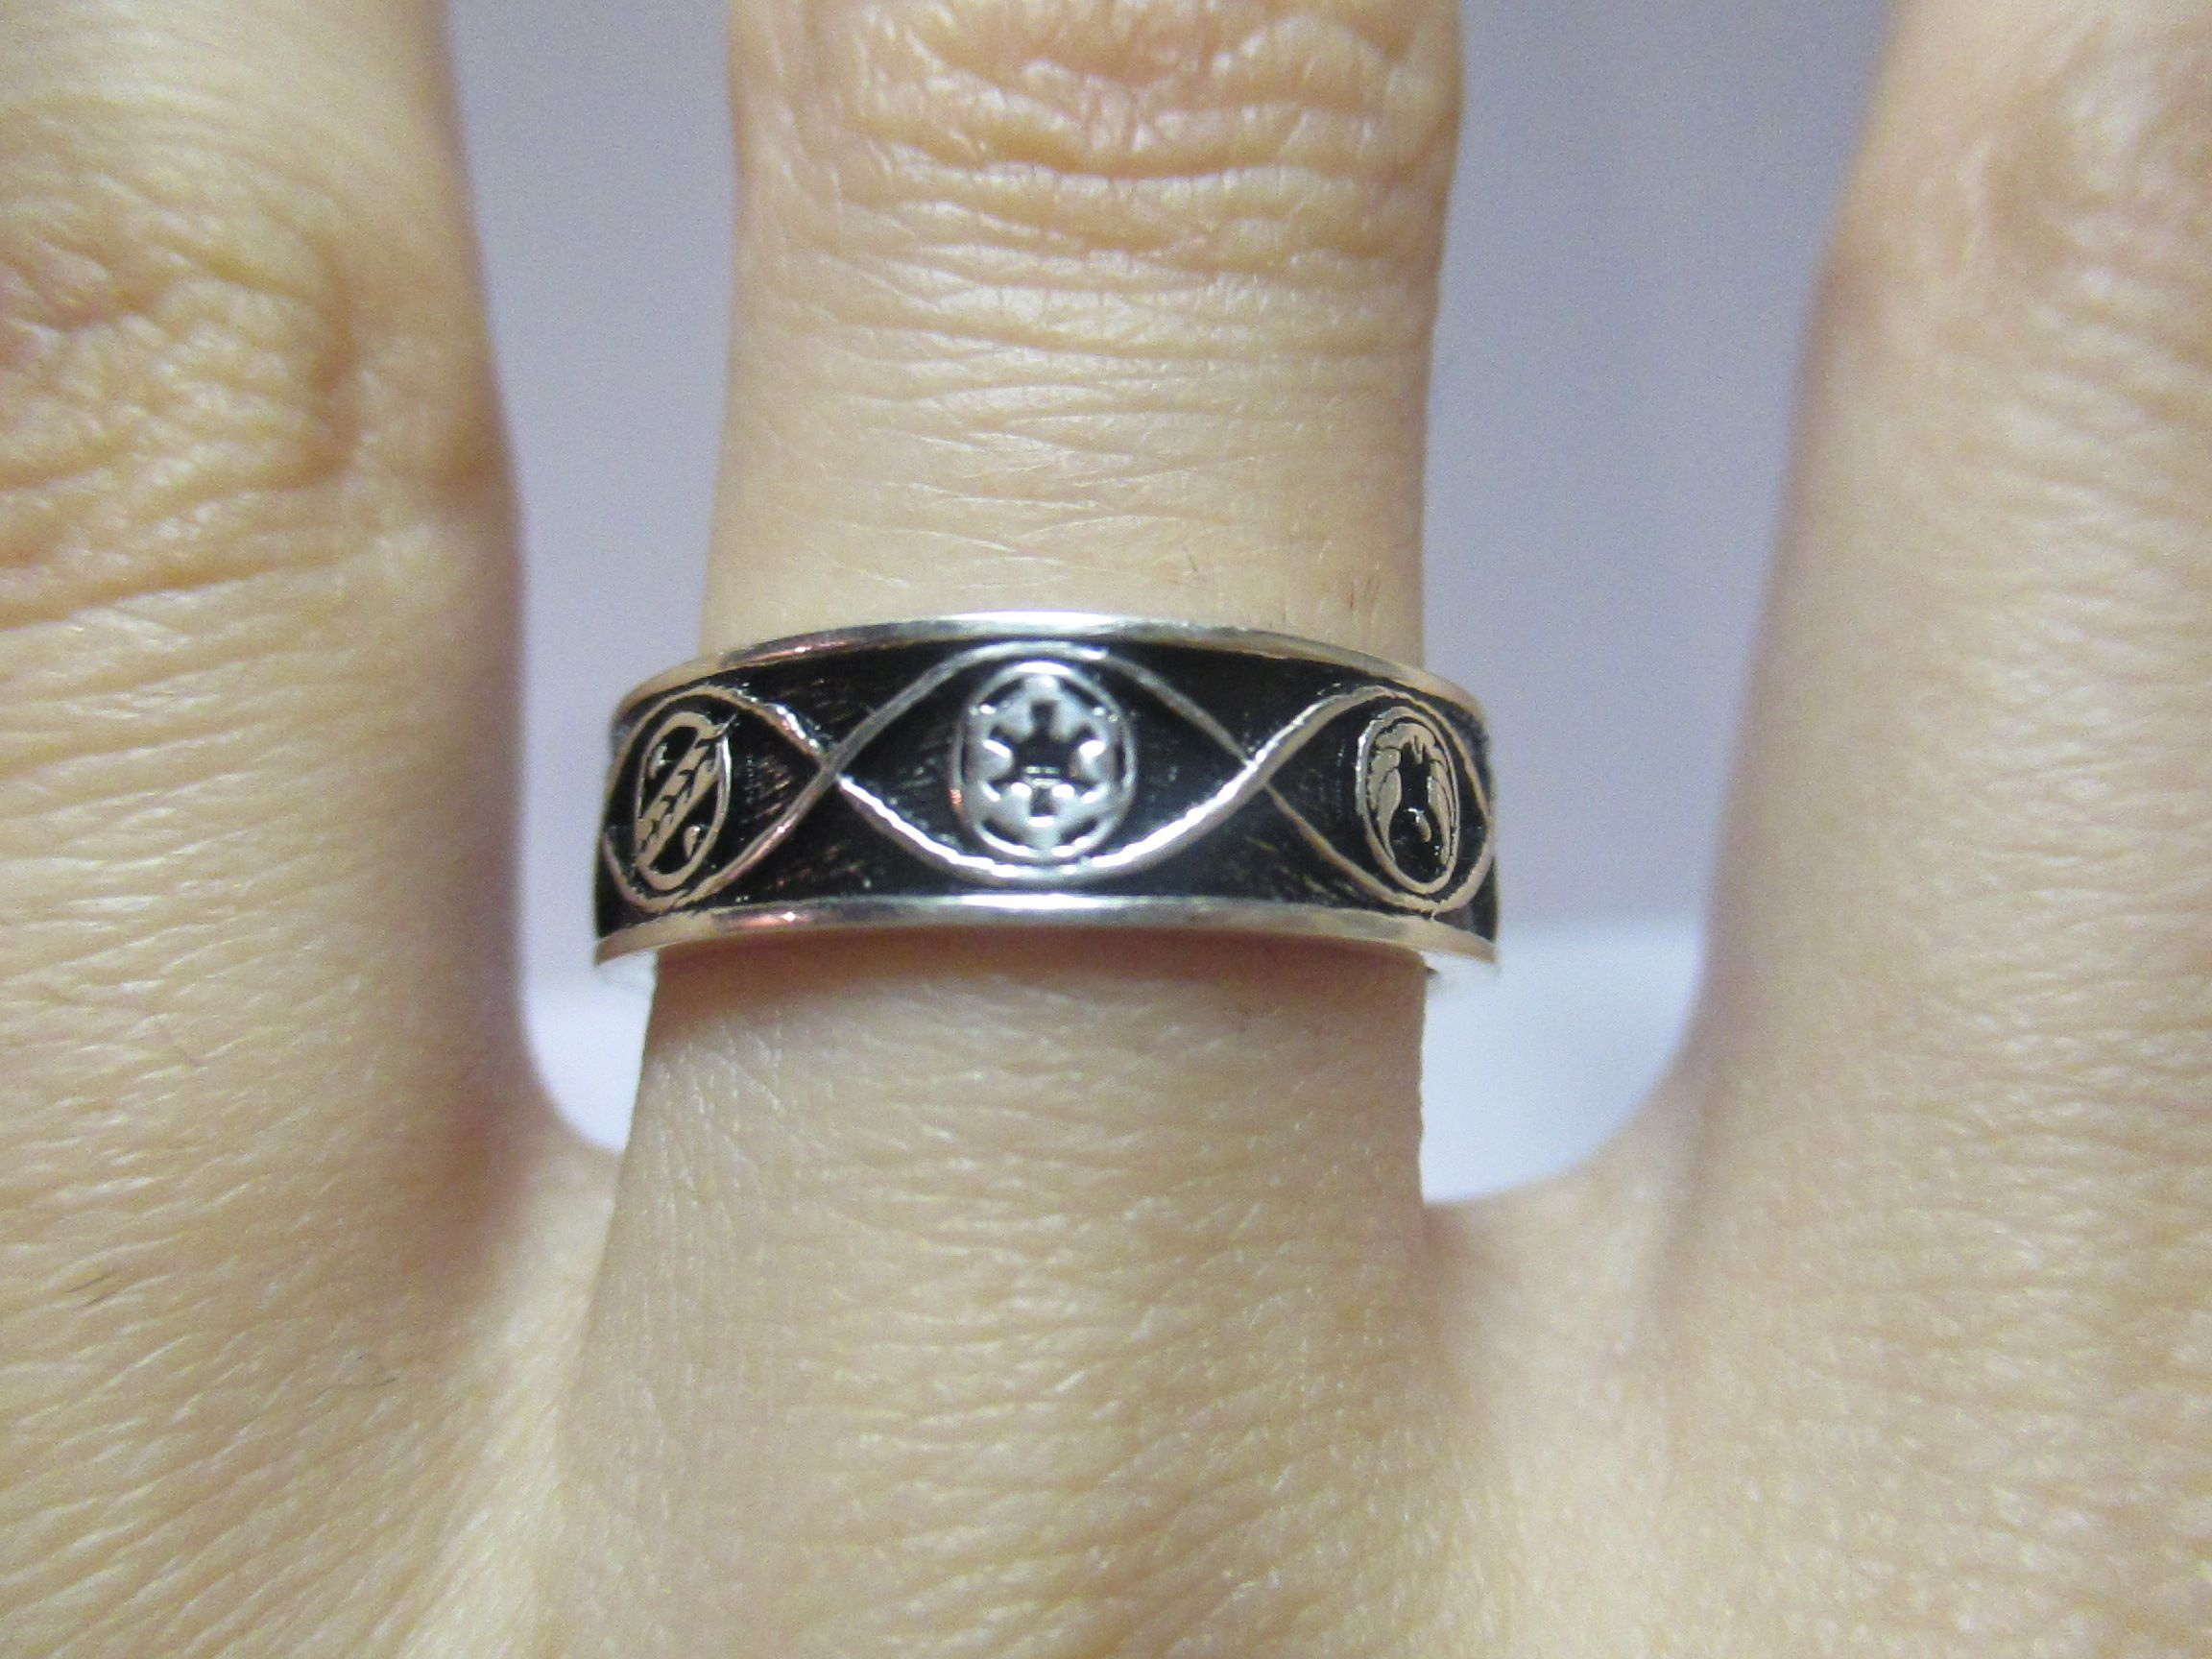 Buy A Hand Crafted Star Wars Infinity Wedding Band Made To Order